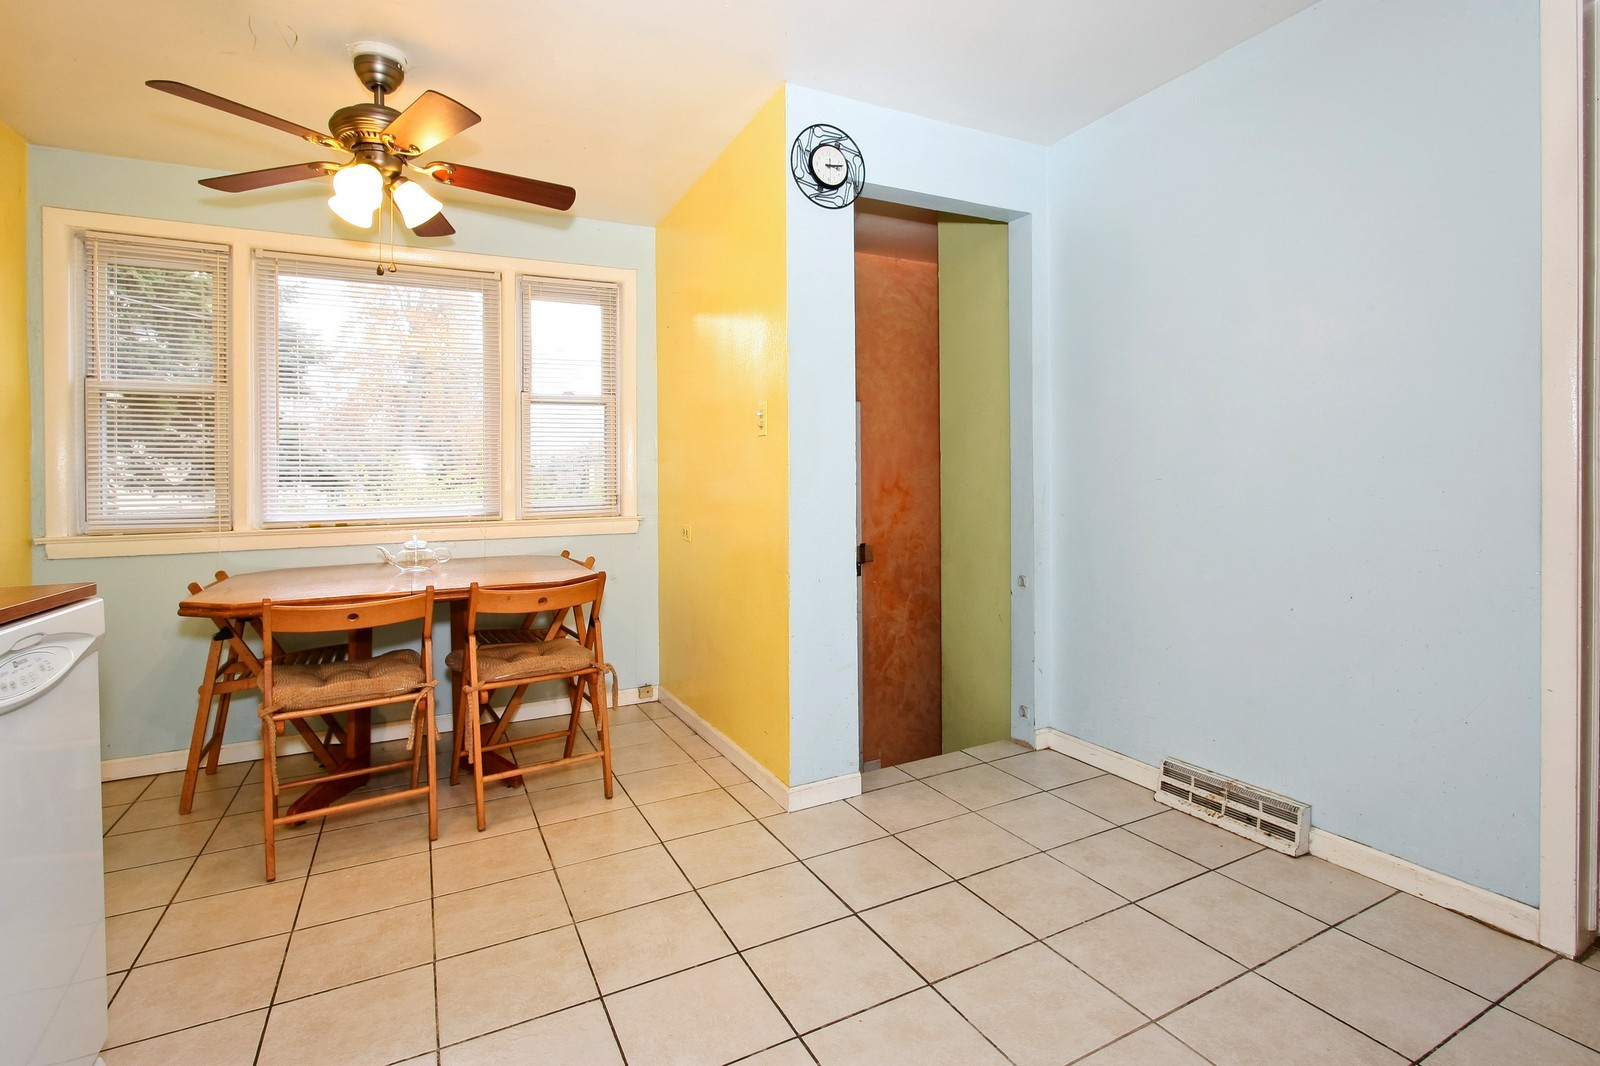 Real Estate Photography - 12462 S Wabash, Chicago, IL, 60620 - Kitchen / Dining Room